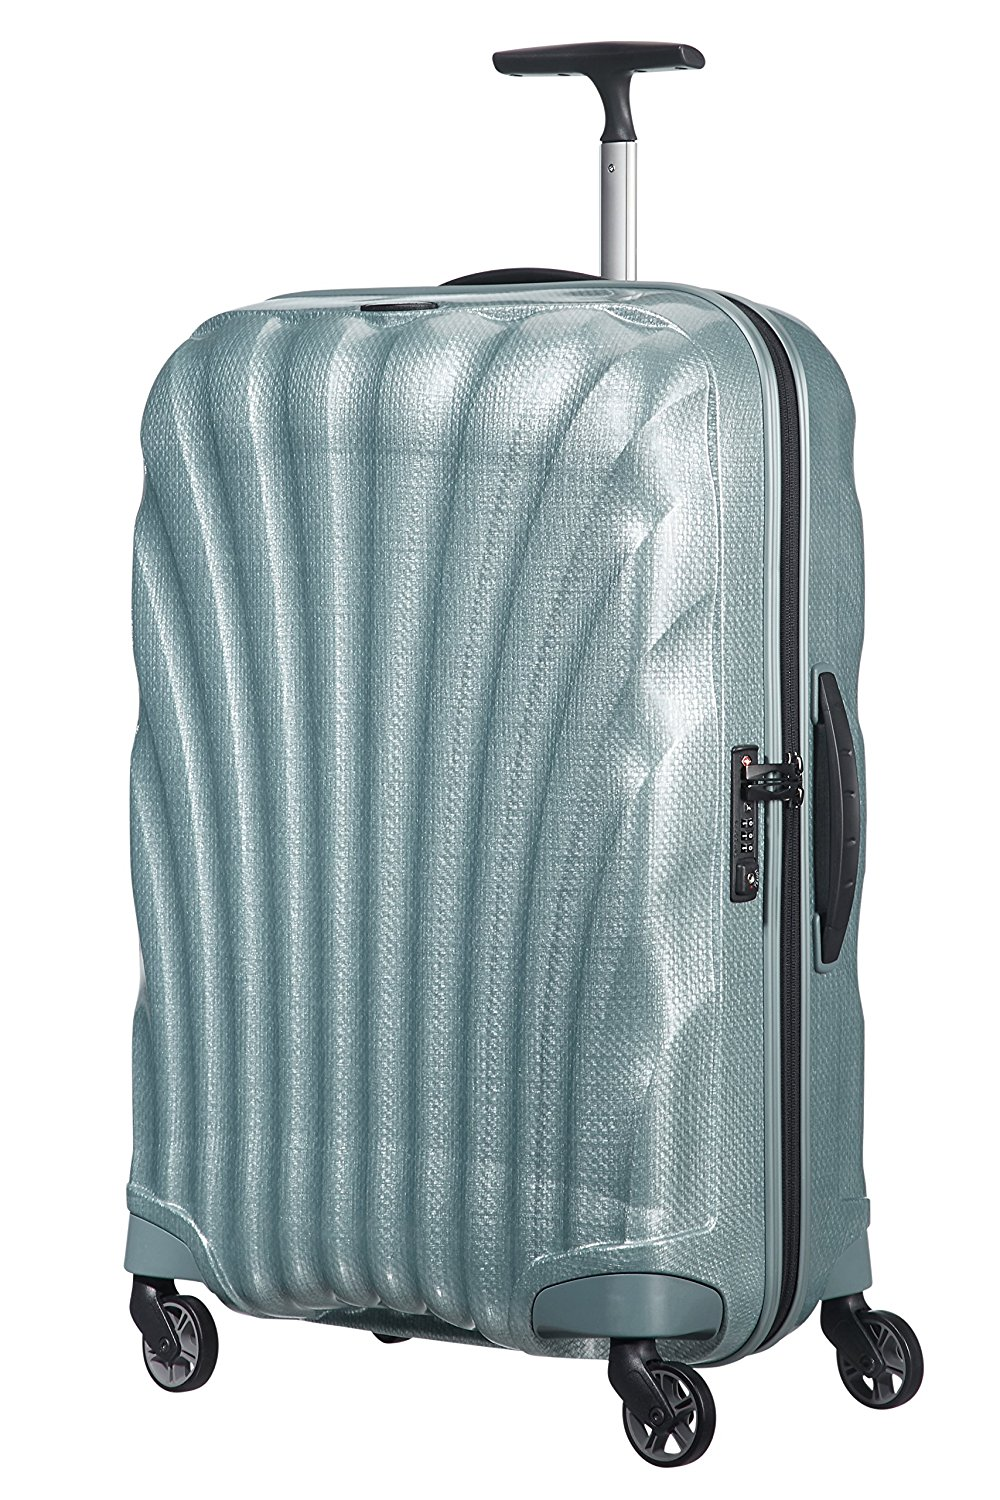 SAMSONITE Cosmolite Spinner 69/25 Koffer, 69 cm, 68 L, Ice Blue